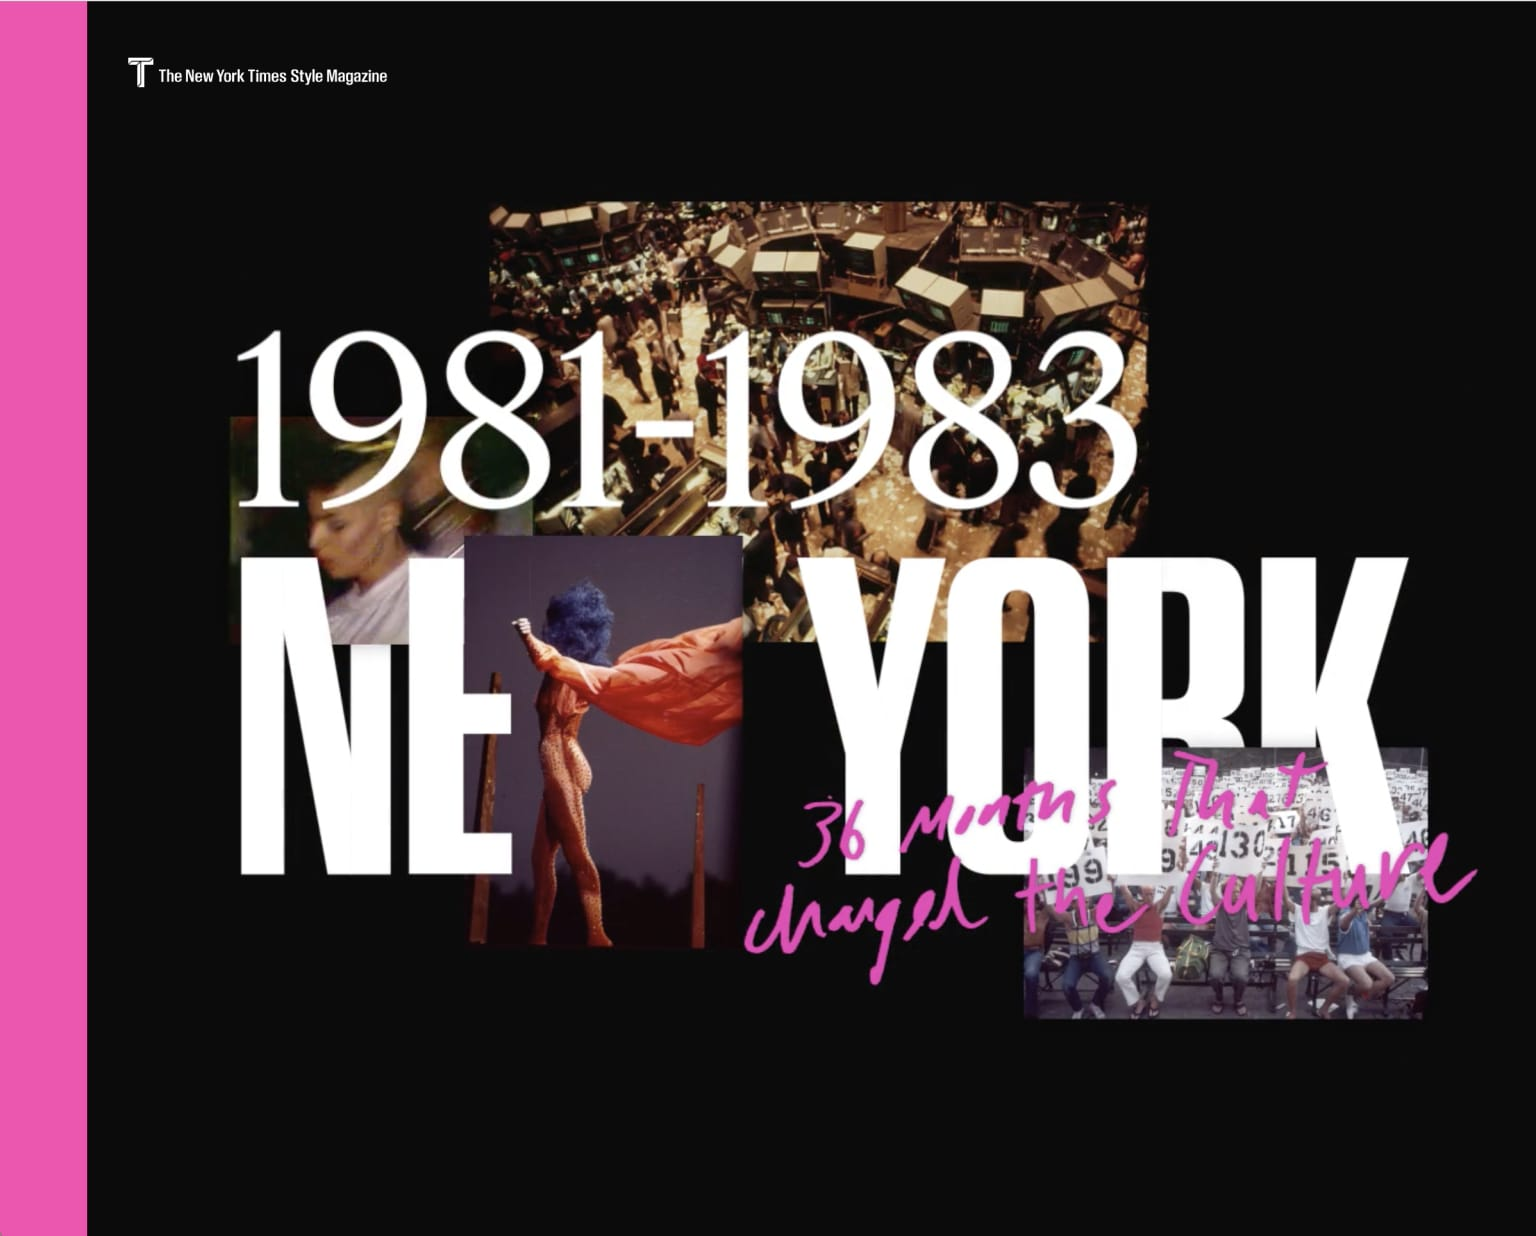 TMAG: 1981-1983 NEW YORK 36 Months That Changed the Culture